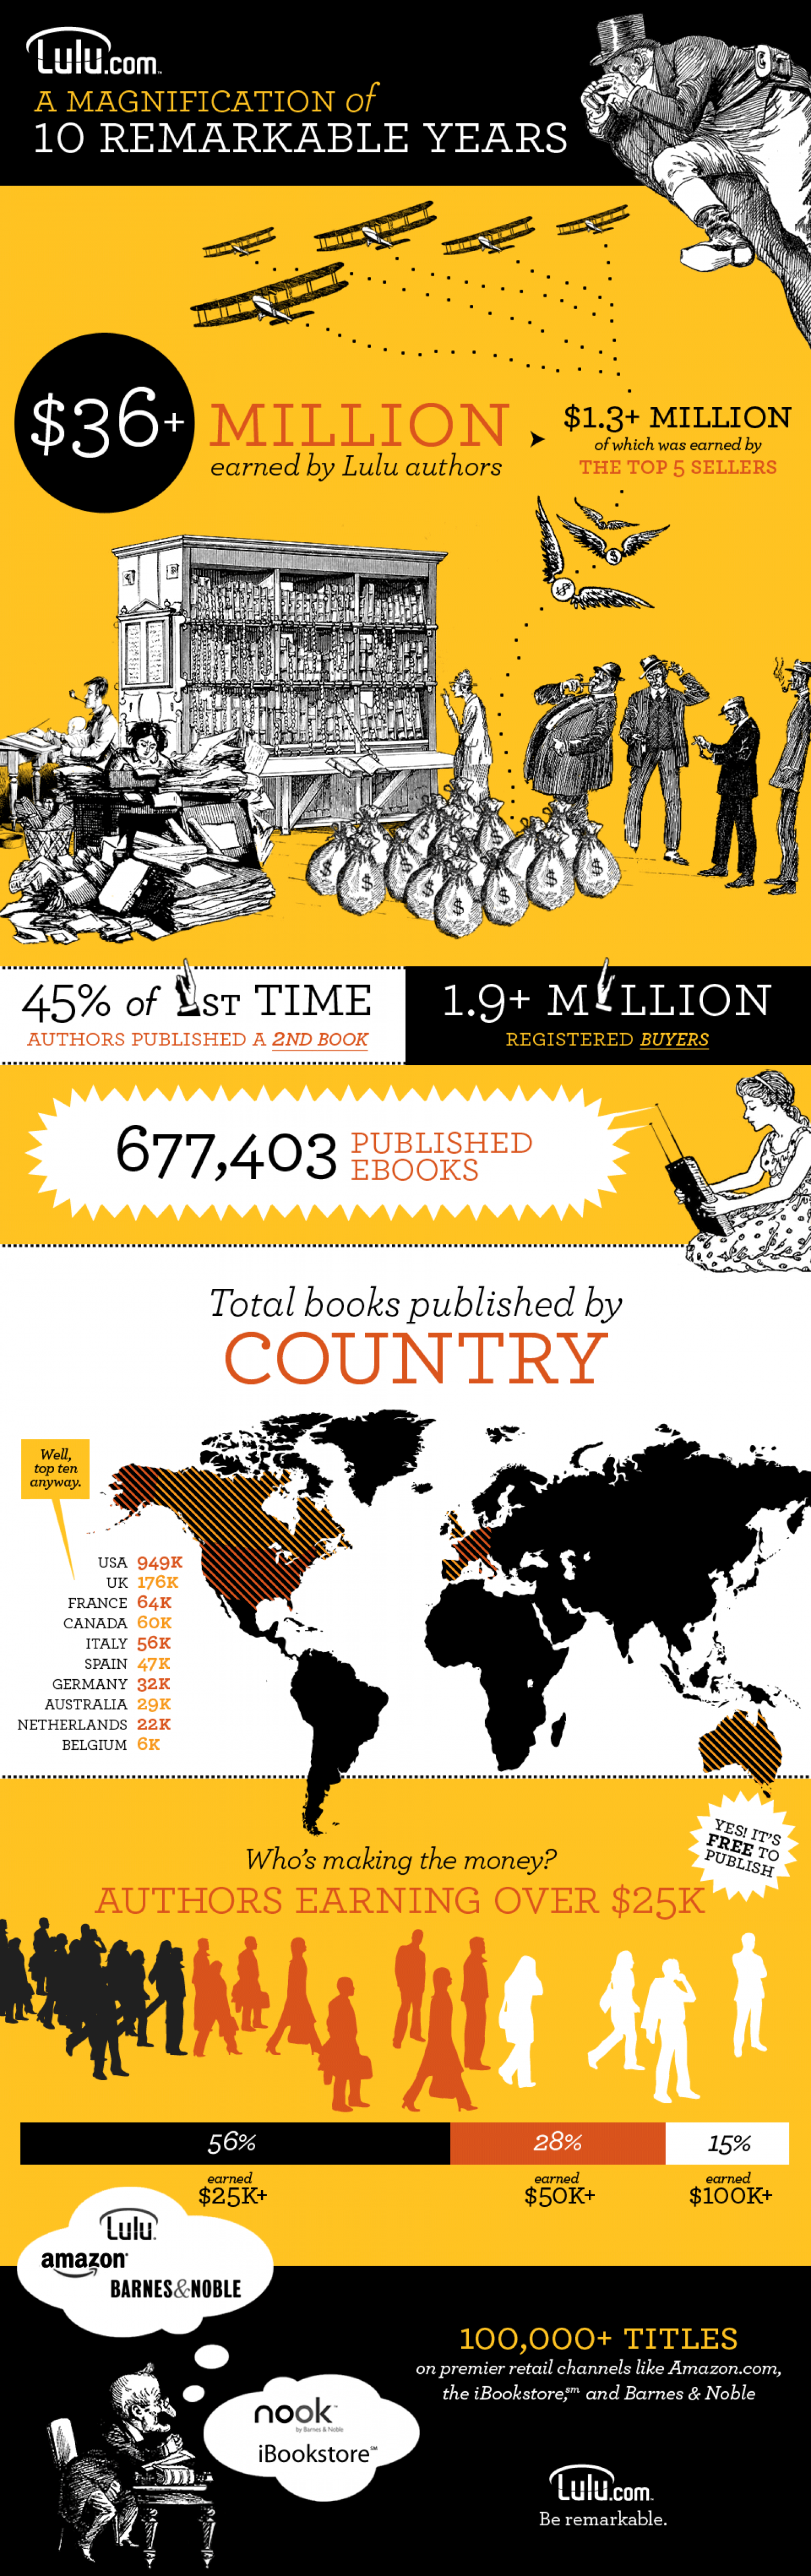 Do Self-Published Authors Make Money? Infographic